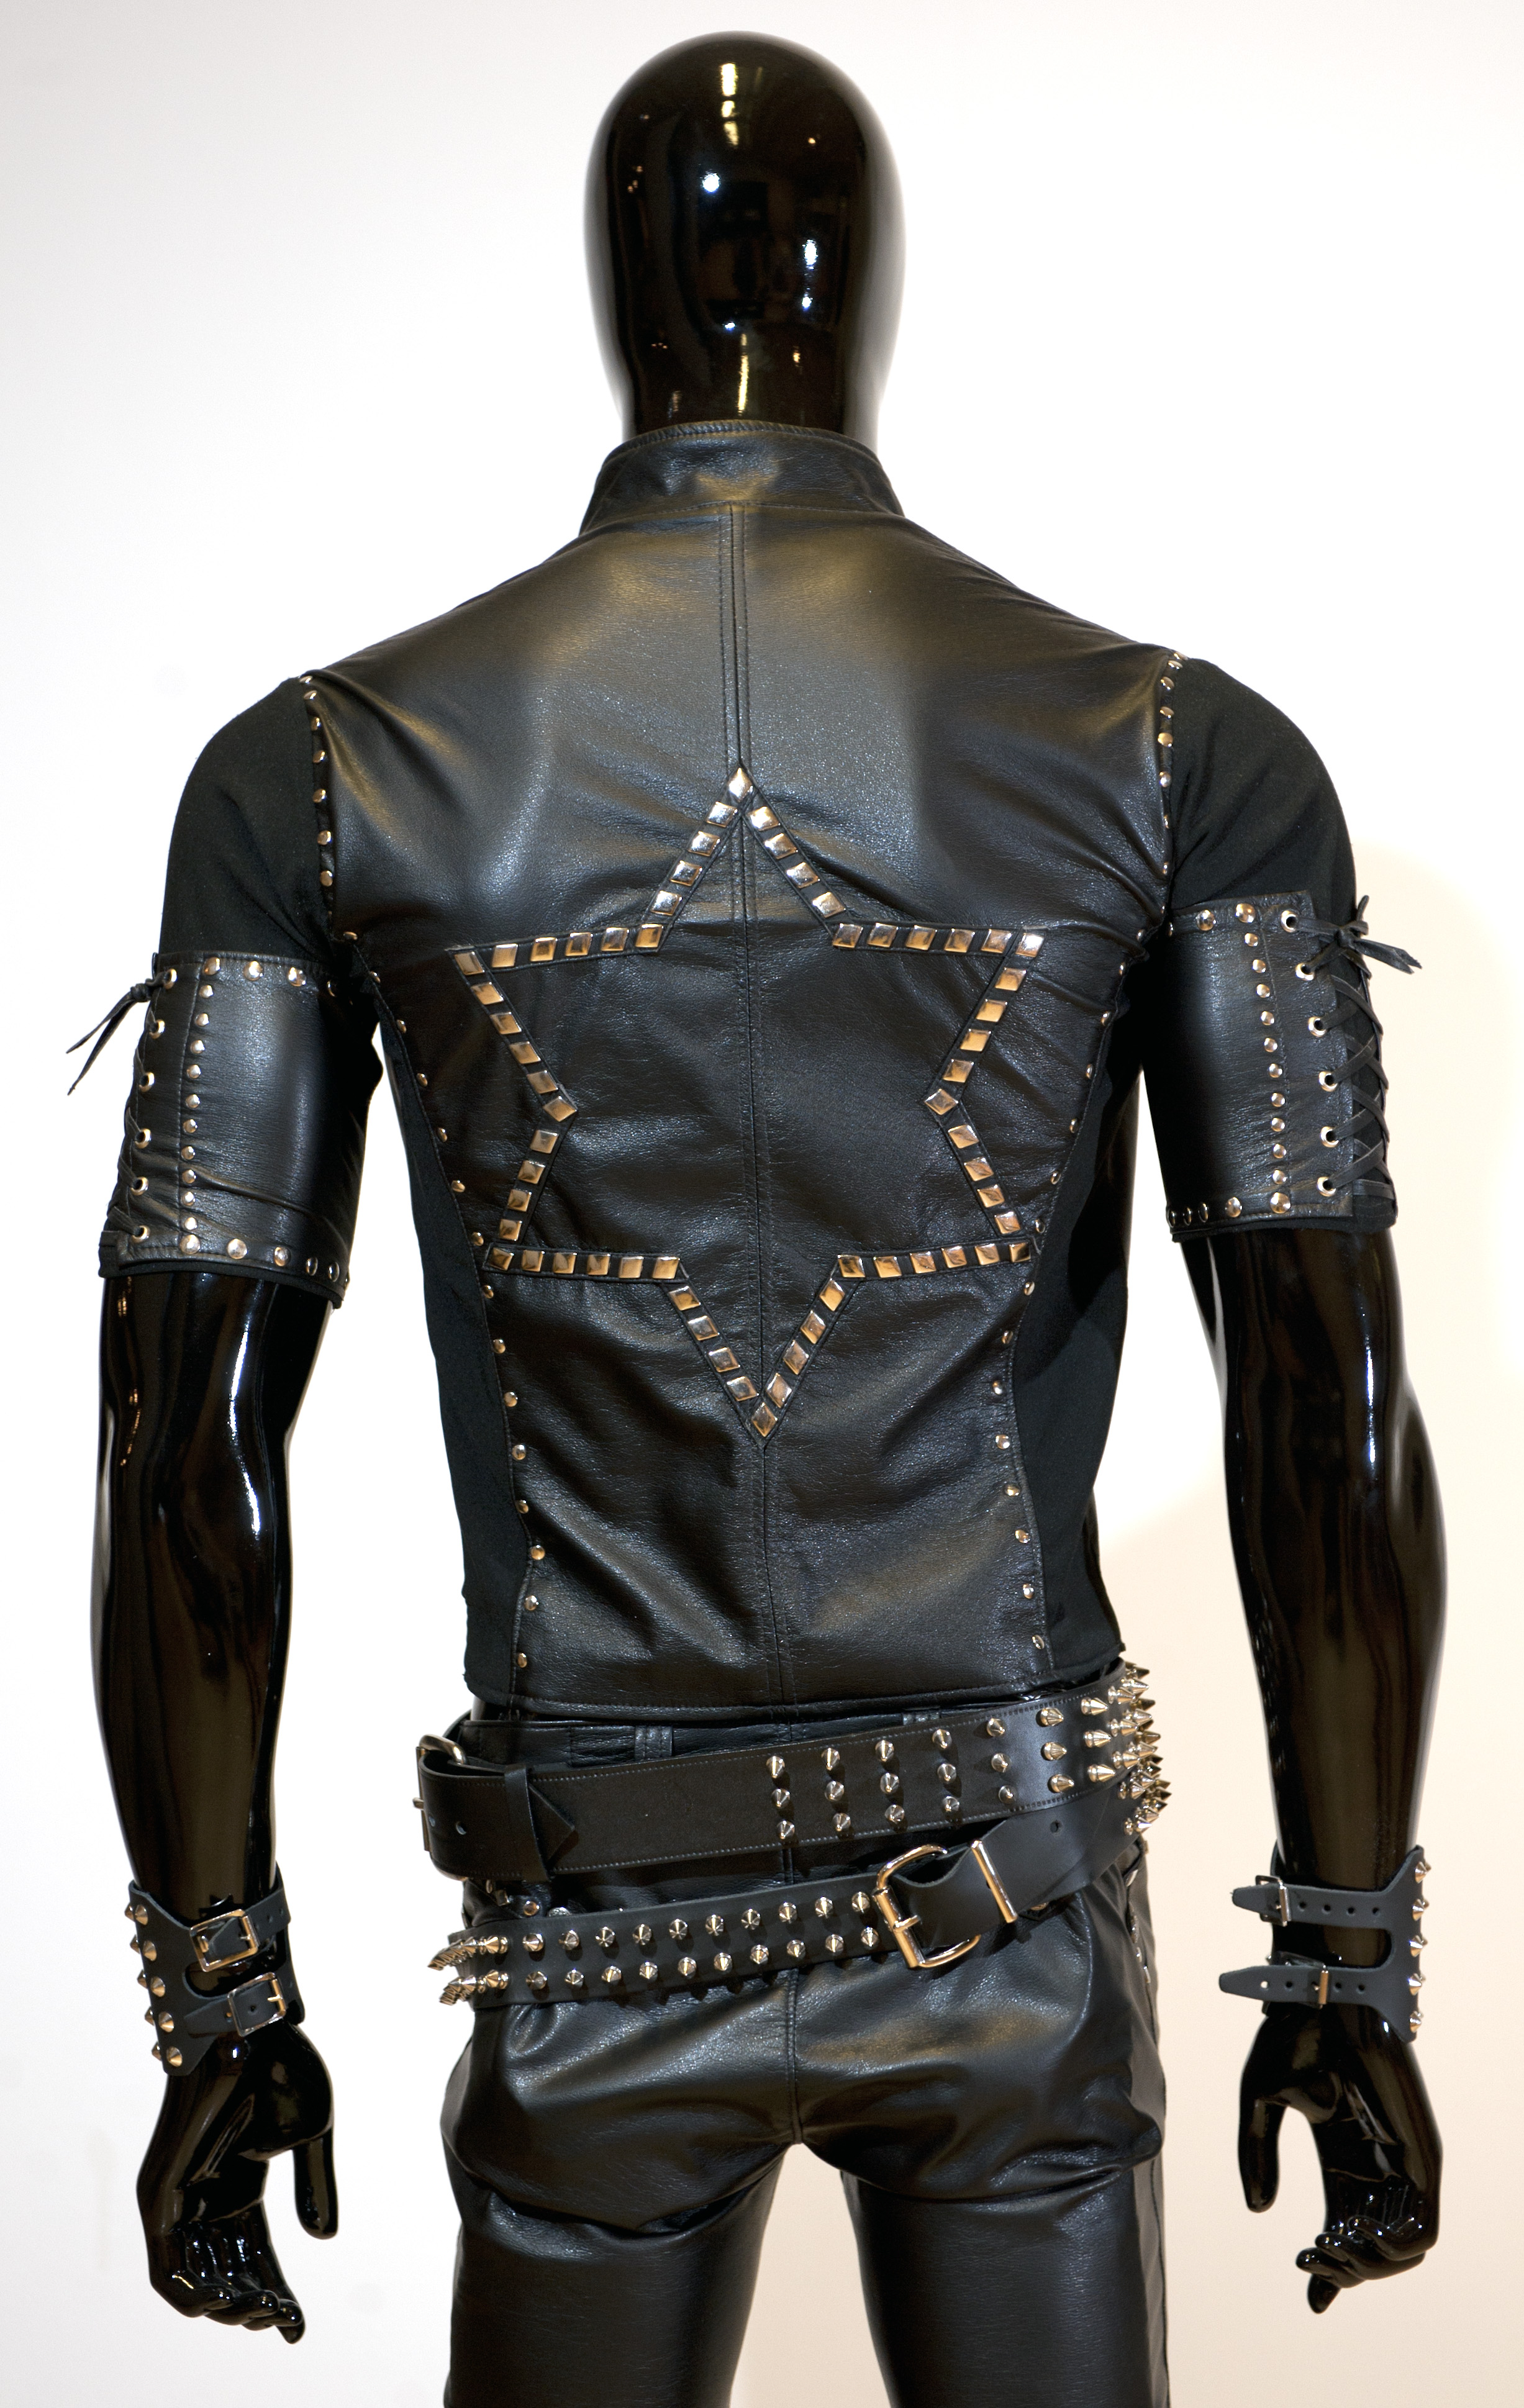 Home of Metal | Rob Halford and Black & Silver Leather Jacket: funny-pictures.picphotos.net/rob-halford-leather/2fast2die.com*wp...